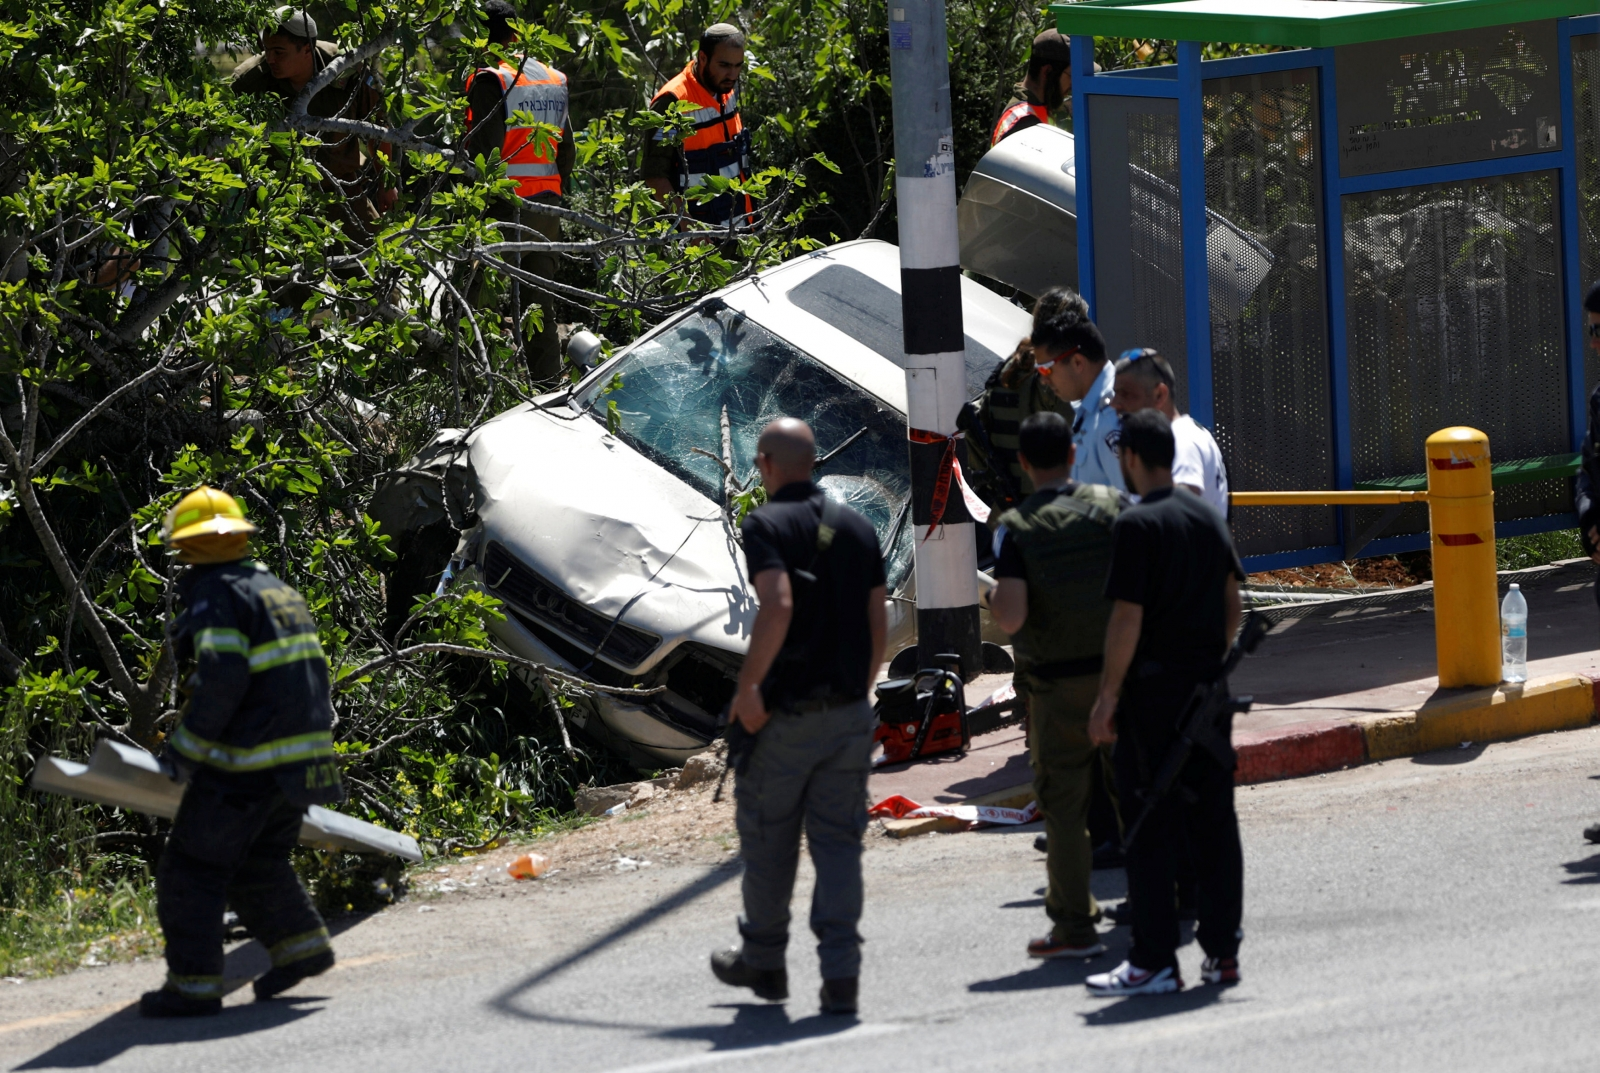 Israel West Bank car attack